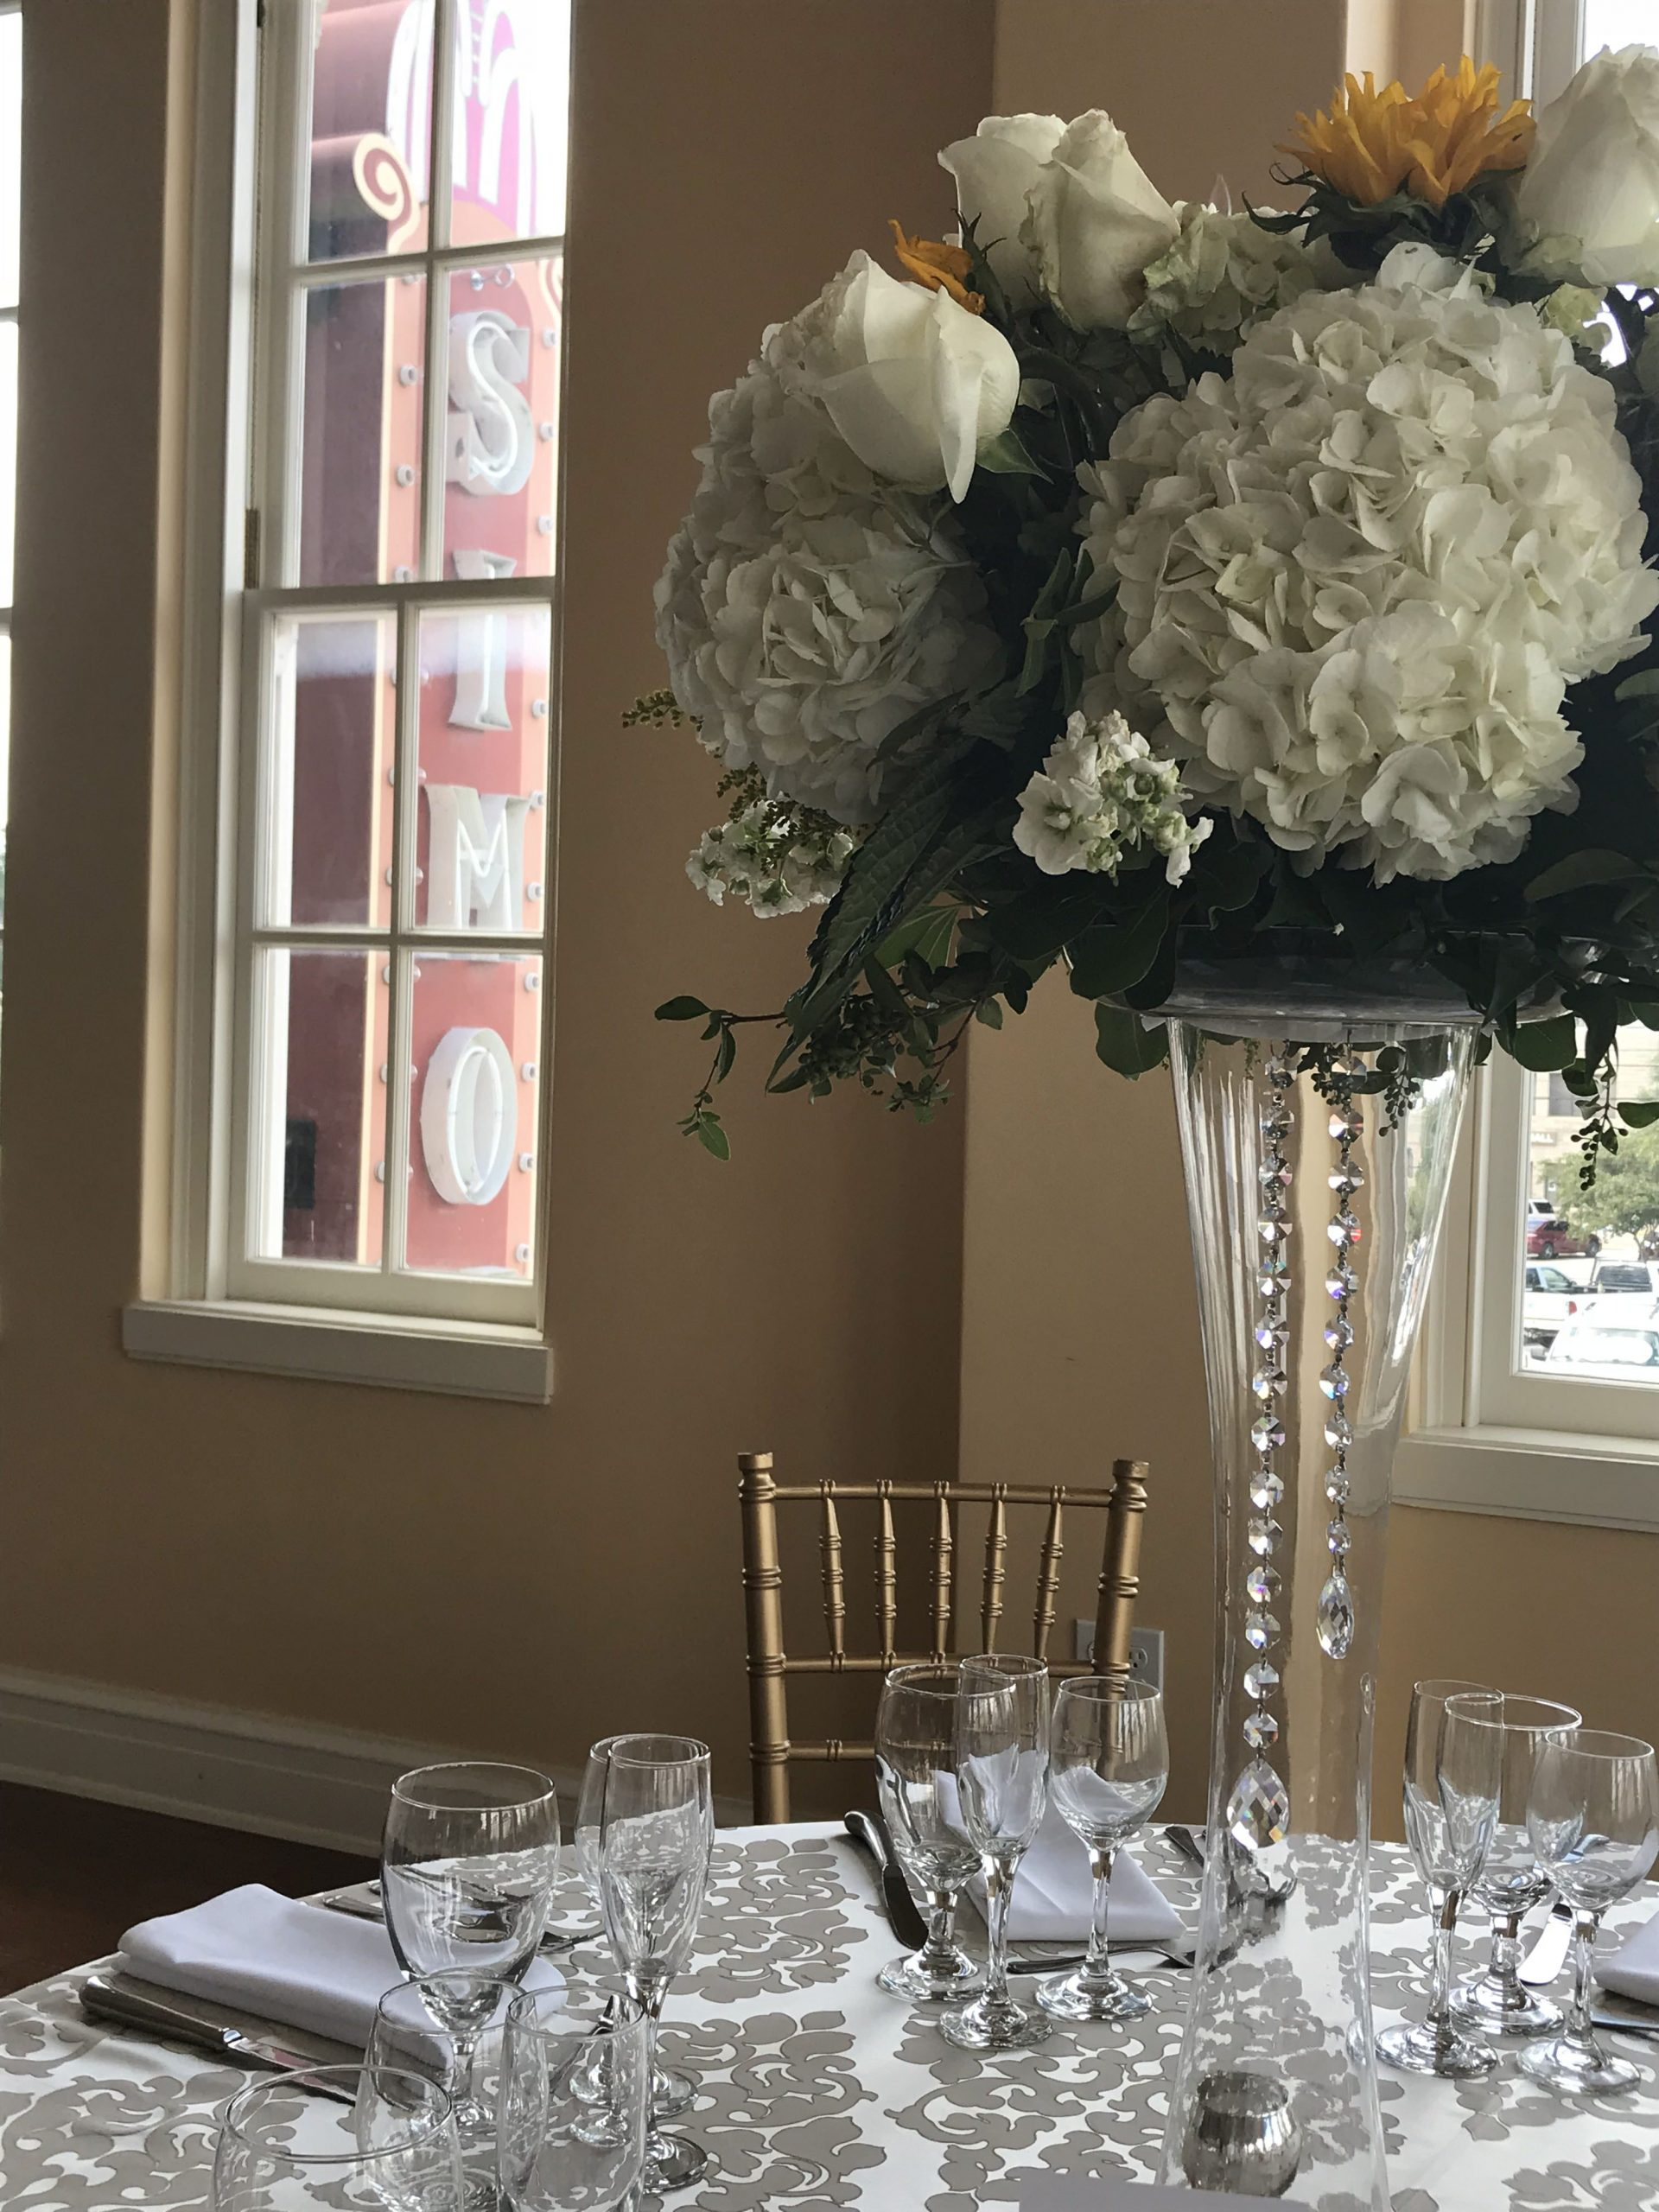 A beautiful, tall crystal vase is topped with an arrangement of white hydrangeas, white roses and yellow sunflowers. Crystal beads hang down from the arrangement. The Simon marquee is seen outside the window.